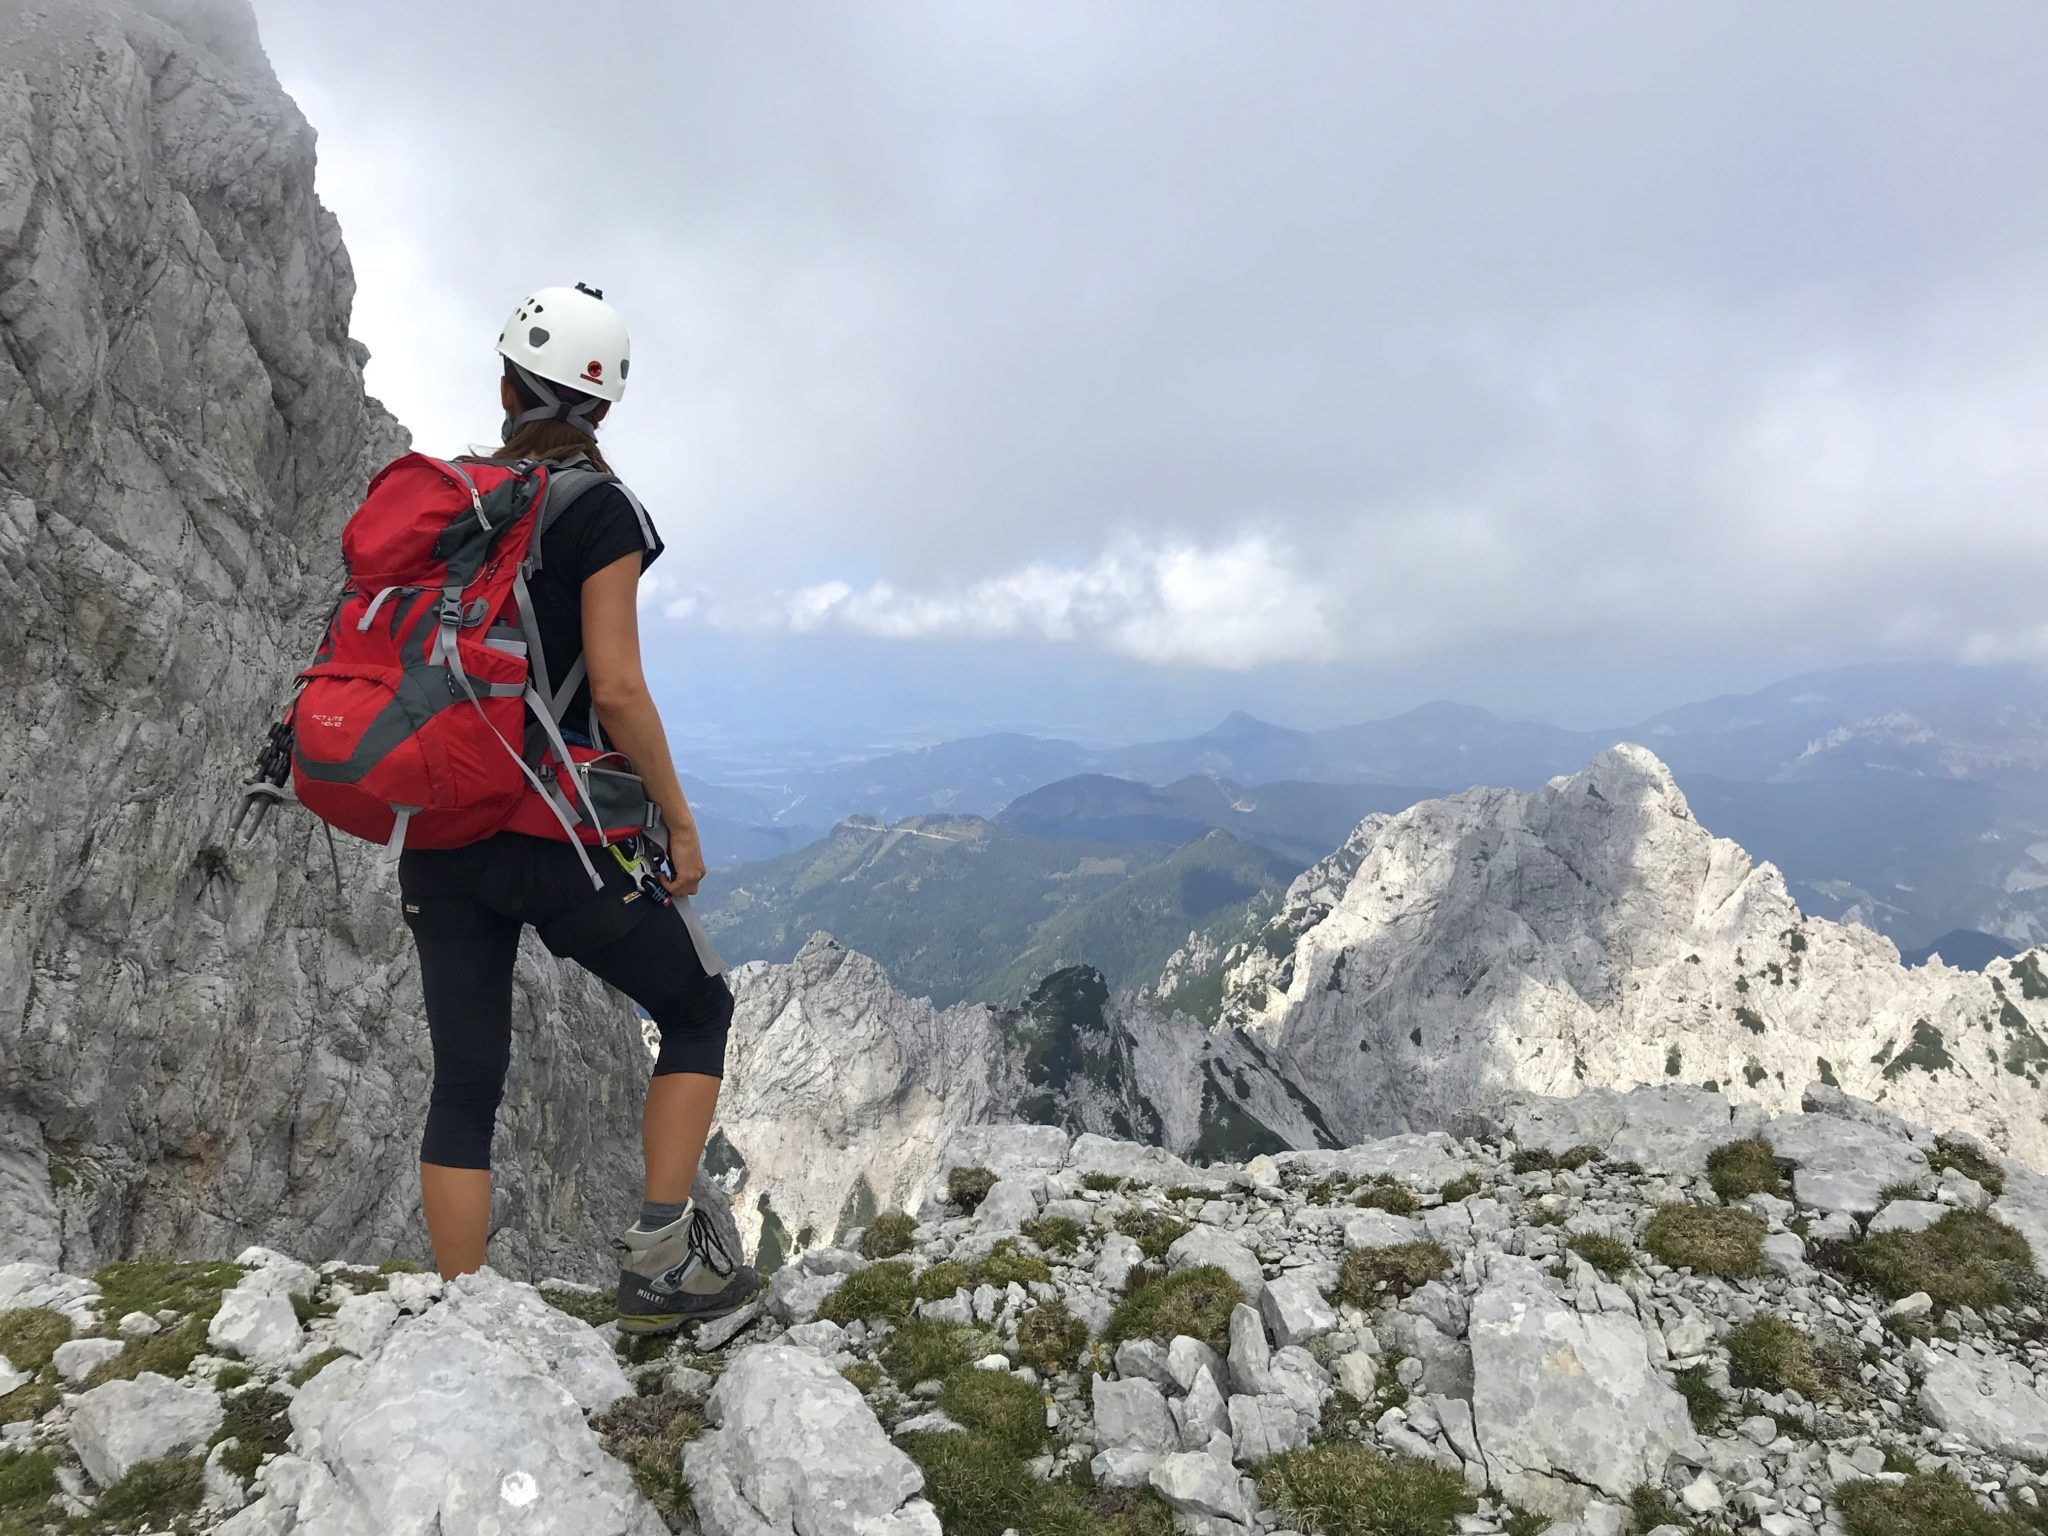 Climbing in the Kamnik-Savinja Alps